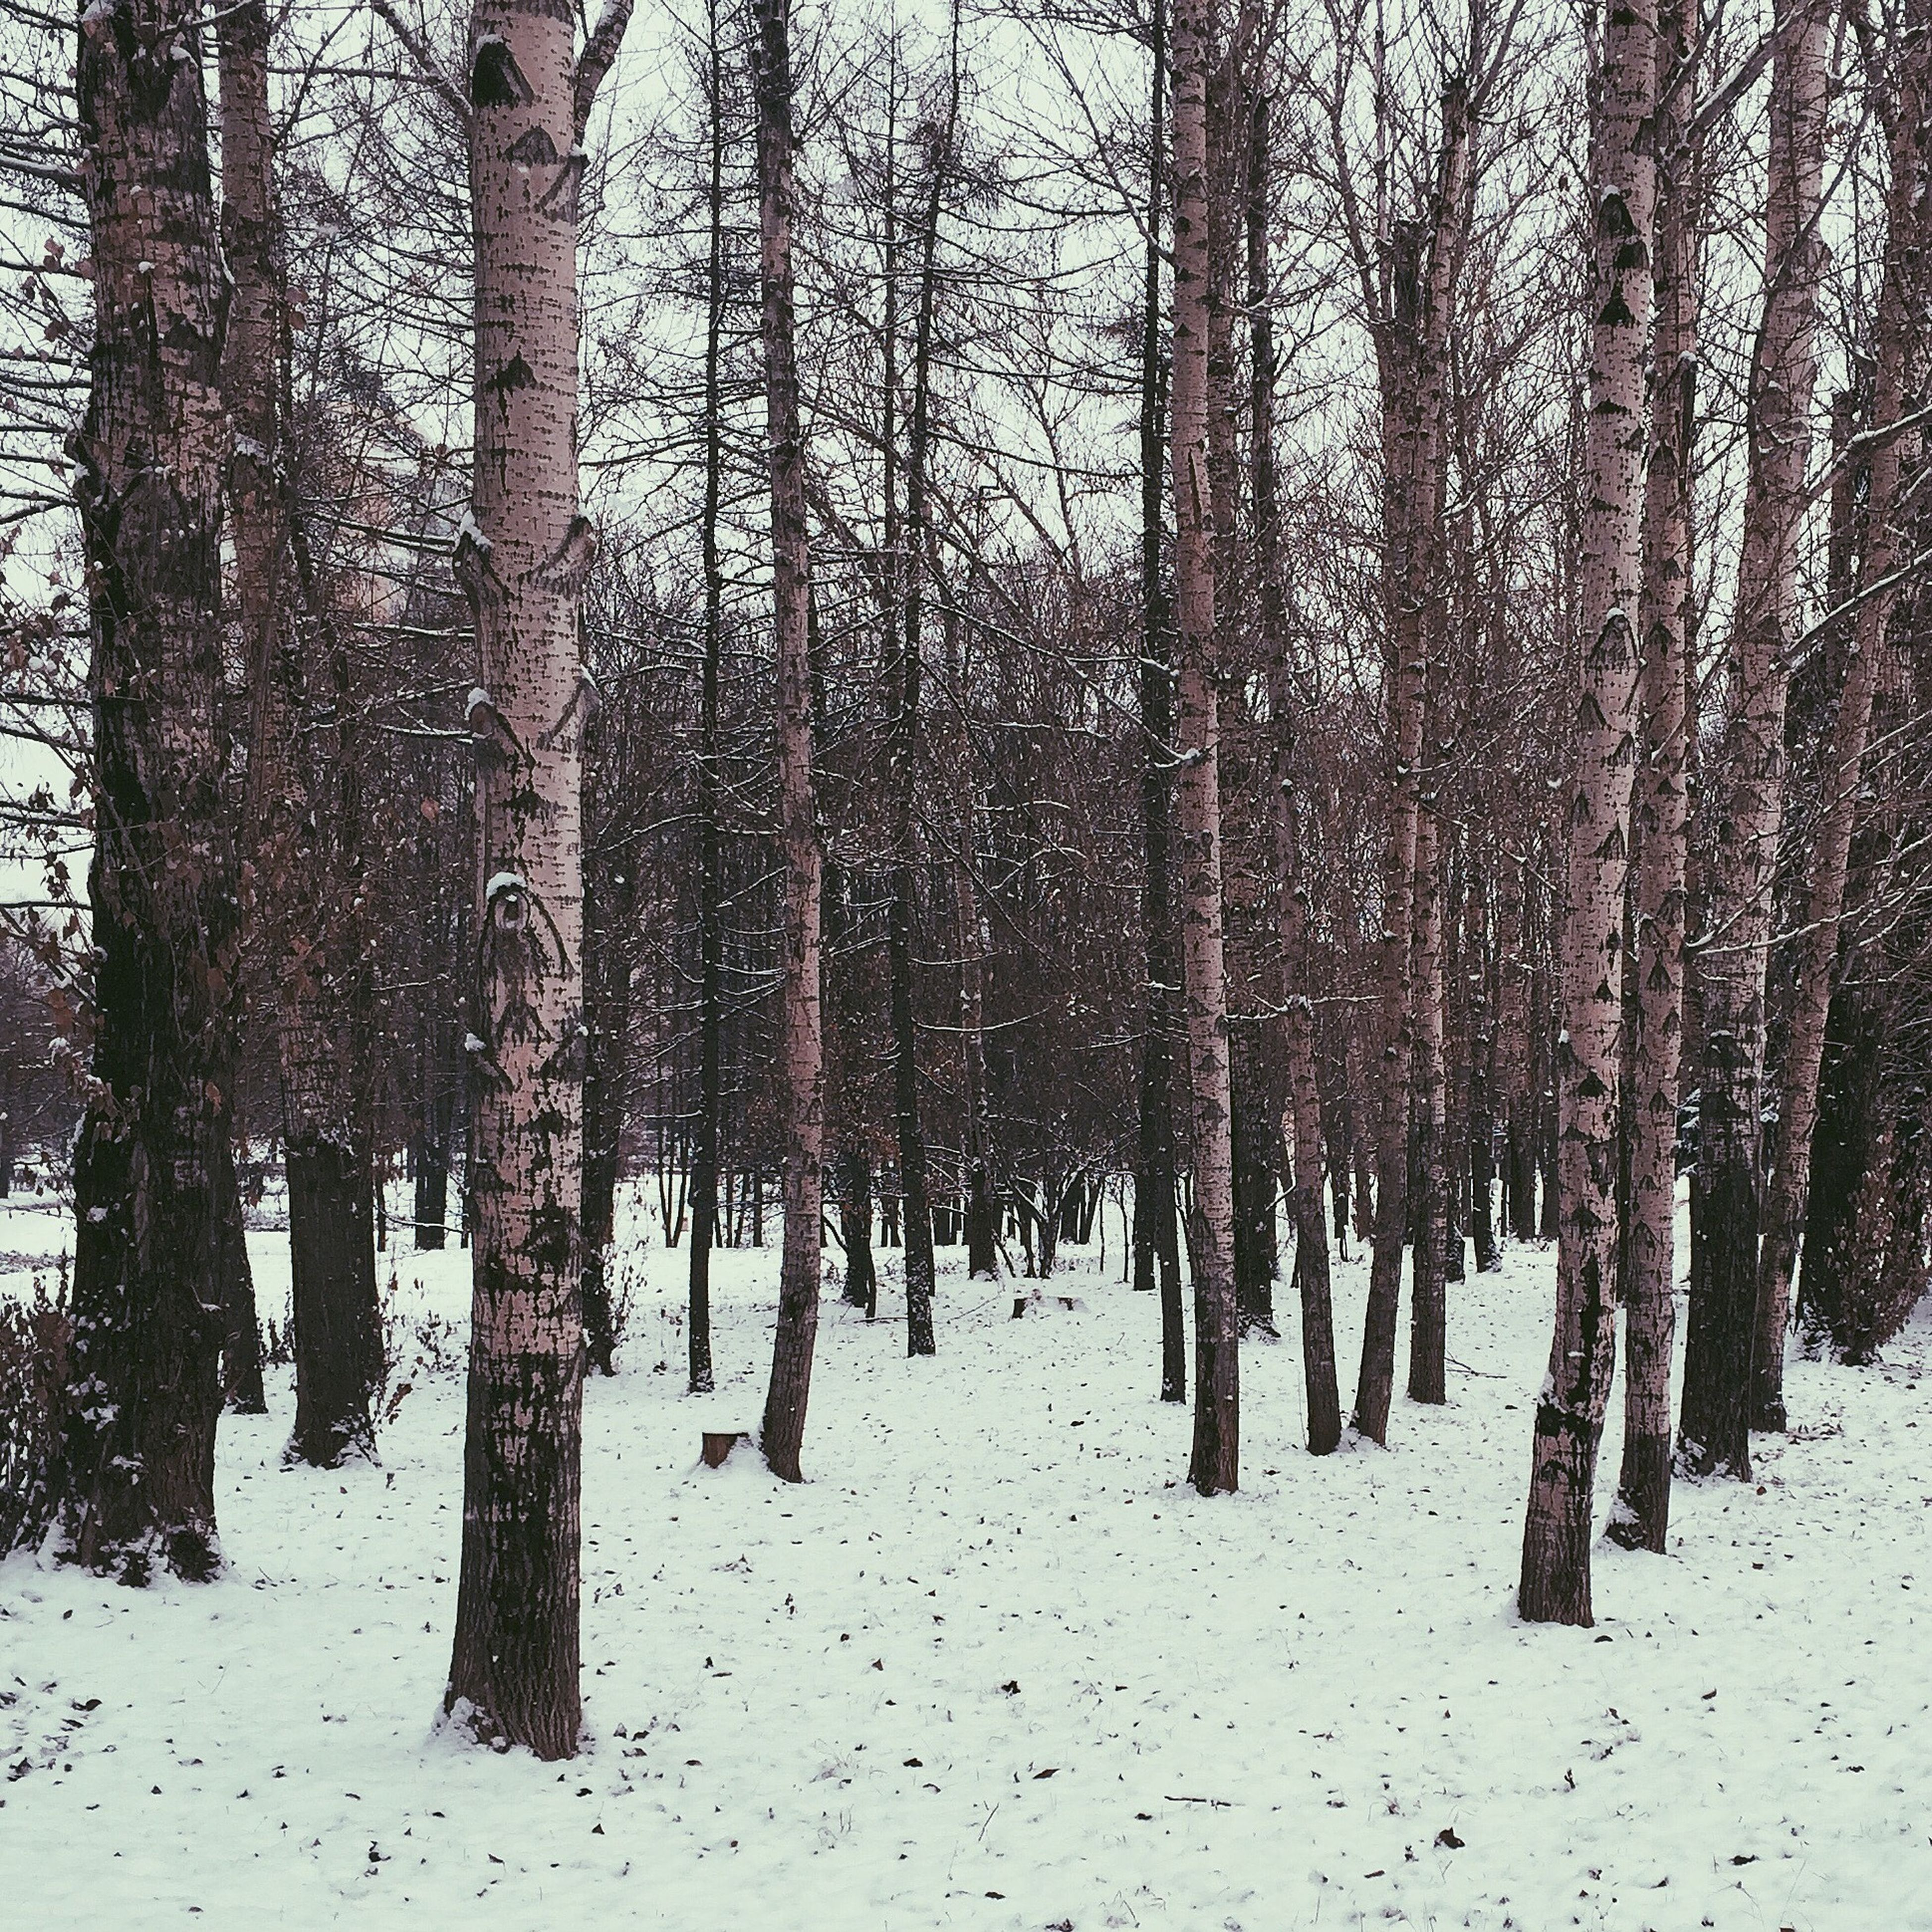 winter, snow, cold temperature, tree, season, tree trunk, tranquility, weather, tranquil scene, nature, woodland, forest, covering, beauty in nature, landscape, bare tree, scenics, branch, frozen, non-urban scene